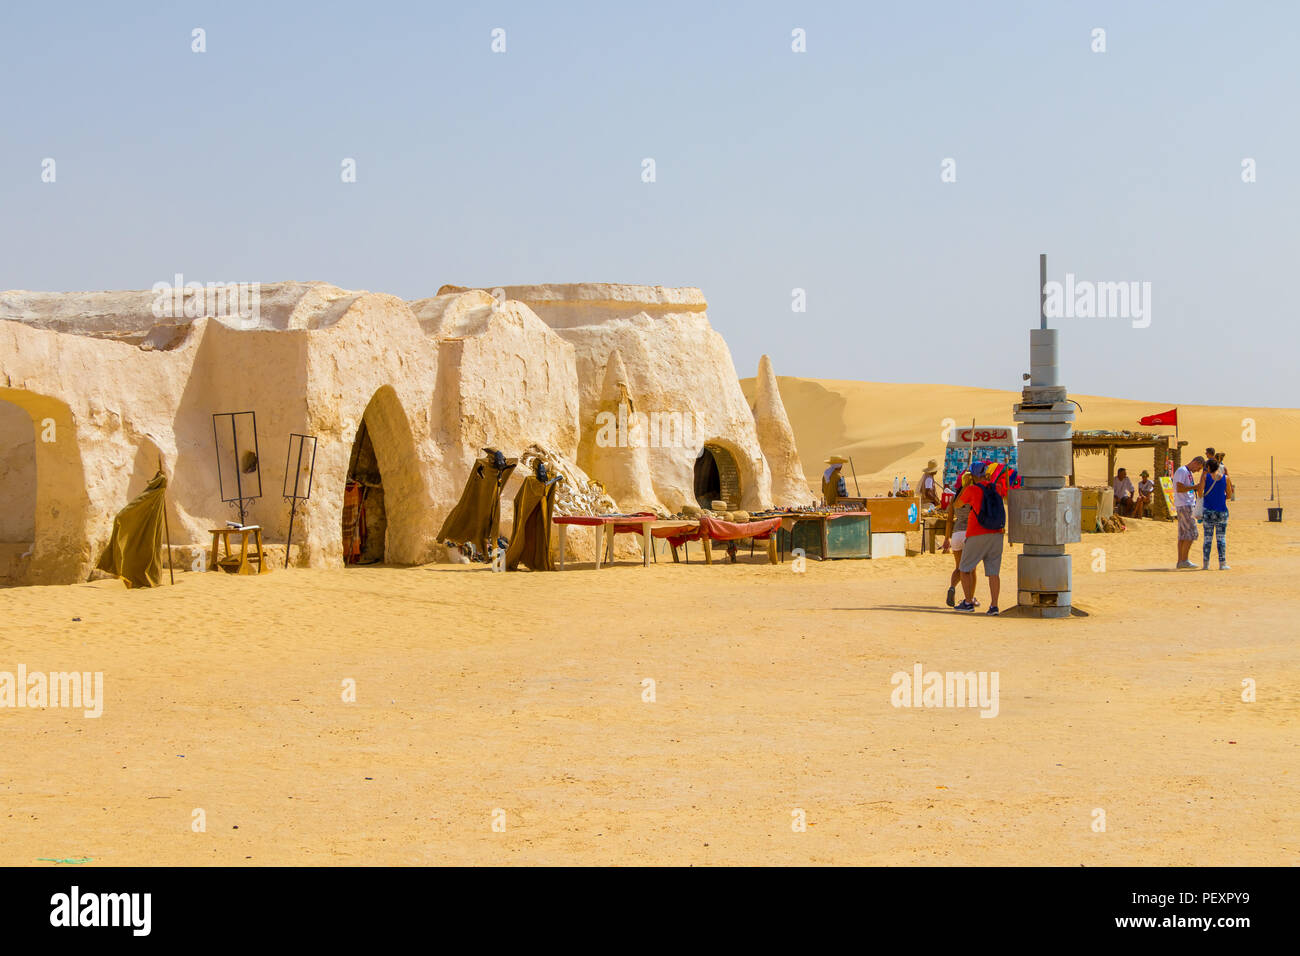 Les gens et le faux costumes de Dark Vador de star wars, la Tunisie, l'Afrique Photo Stock